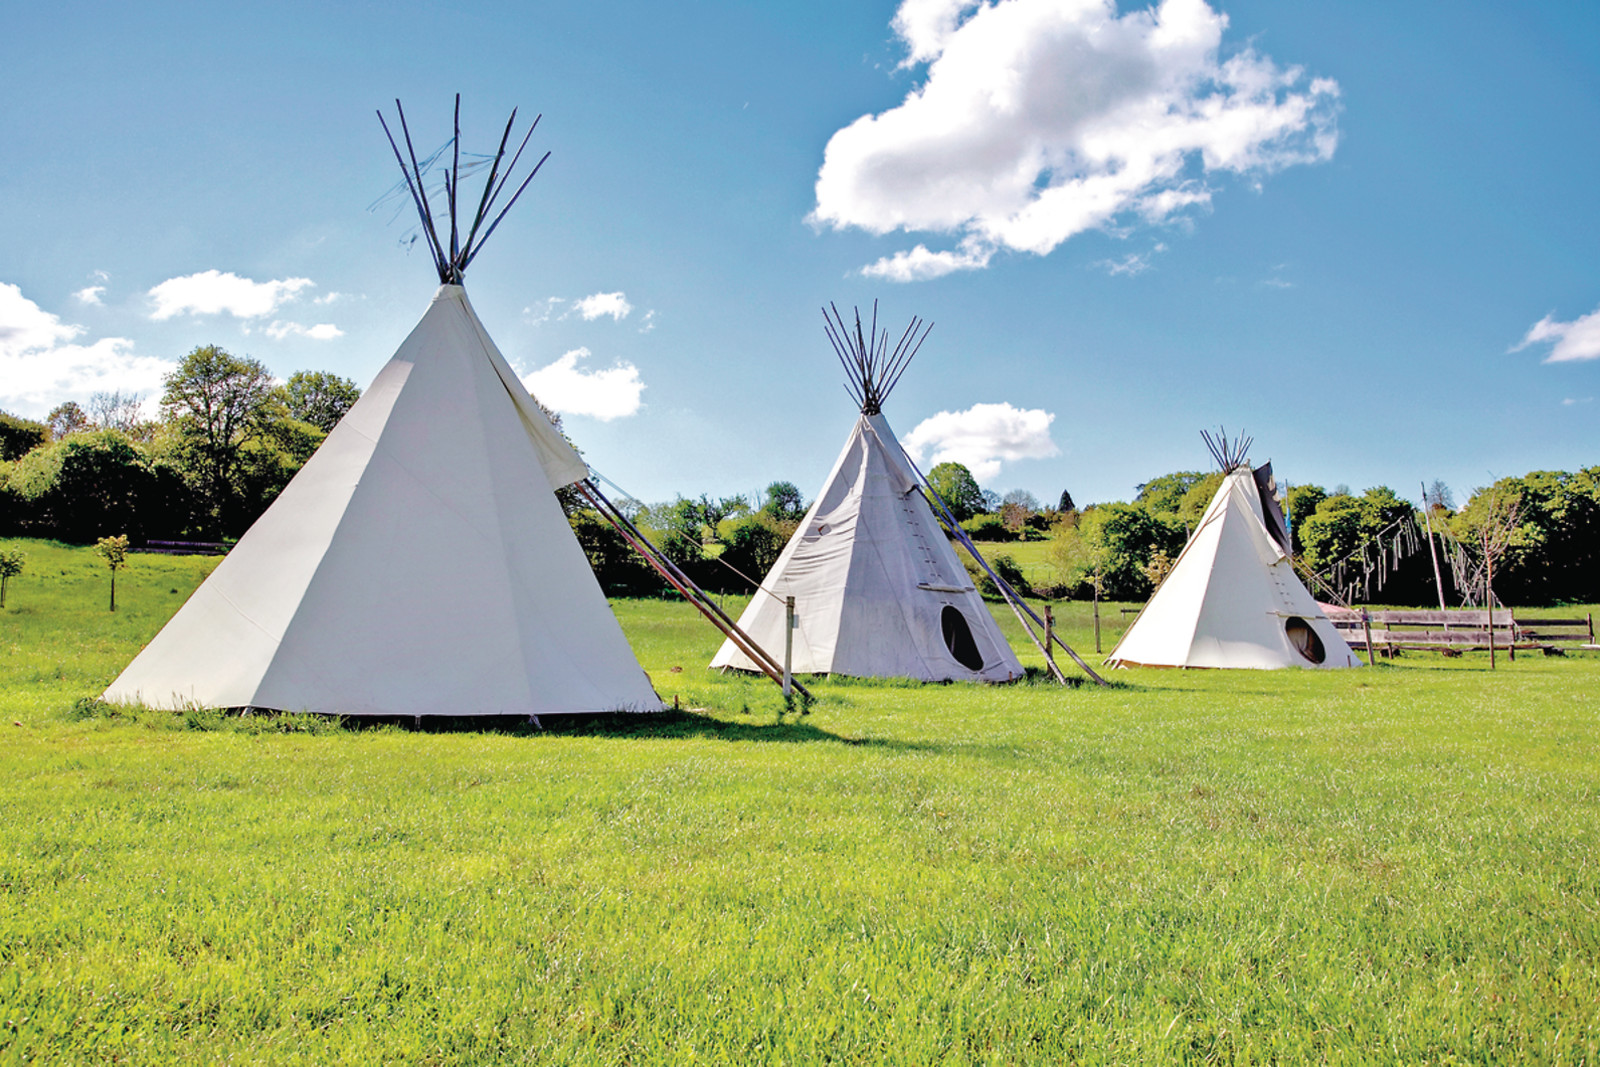 comment faire un tipi indien. Black Bedroom Furniture Sets. Home Design Ideas